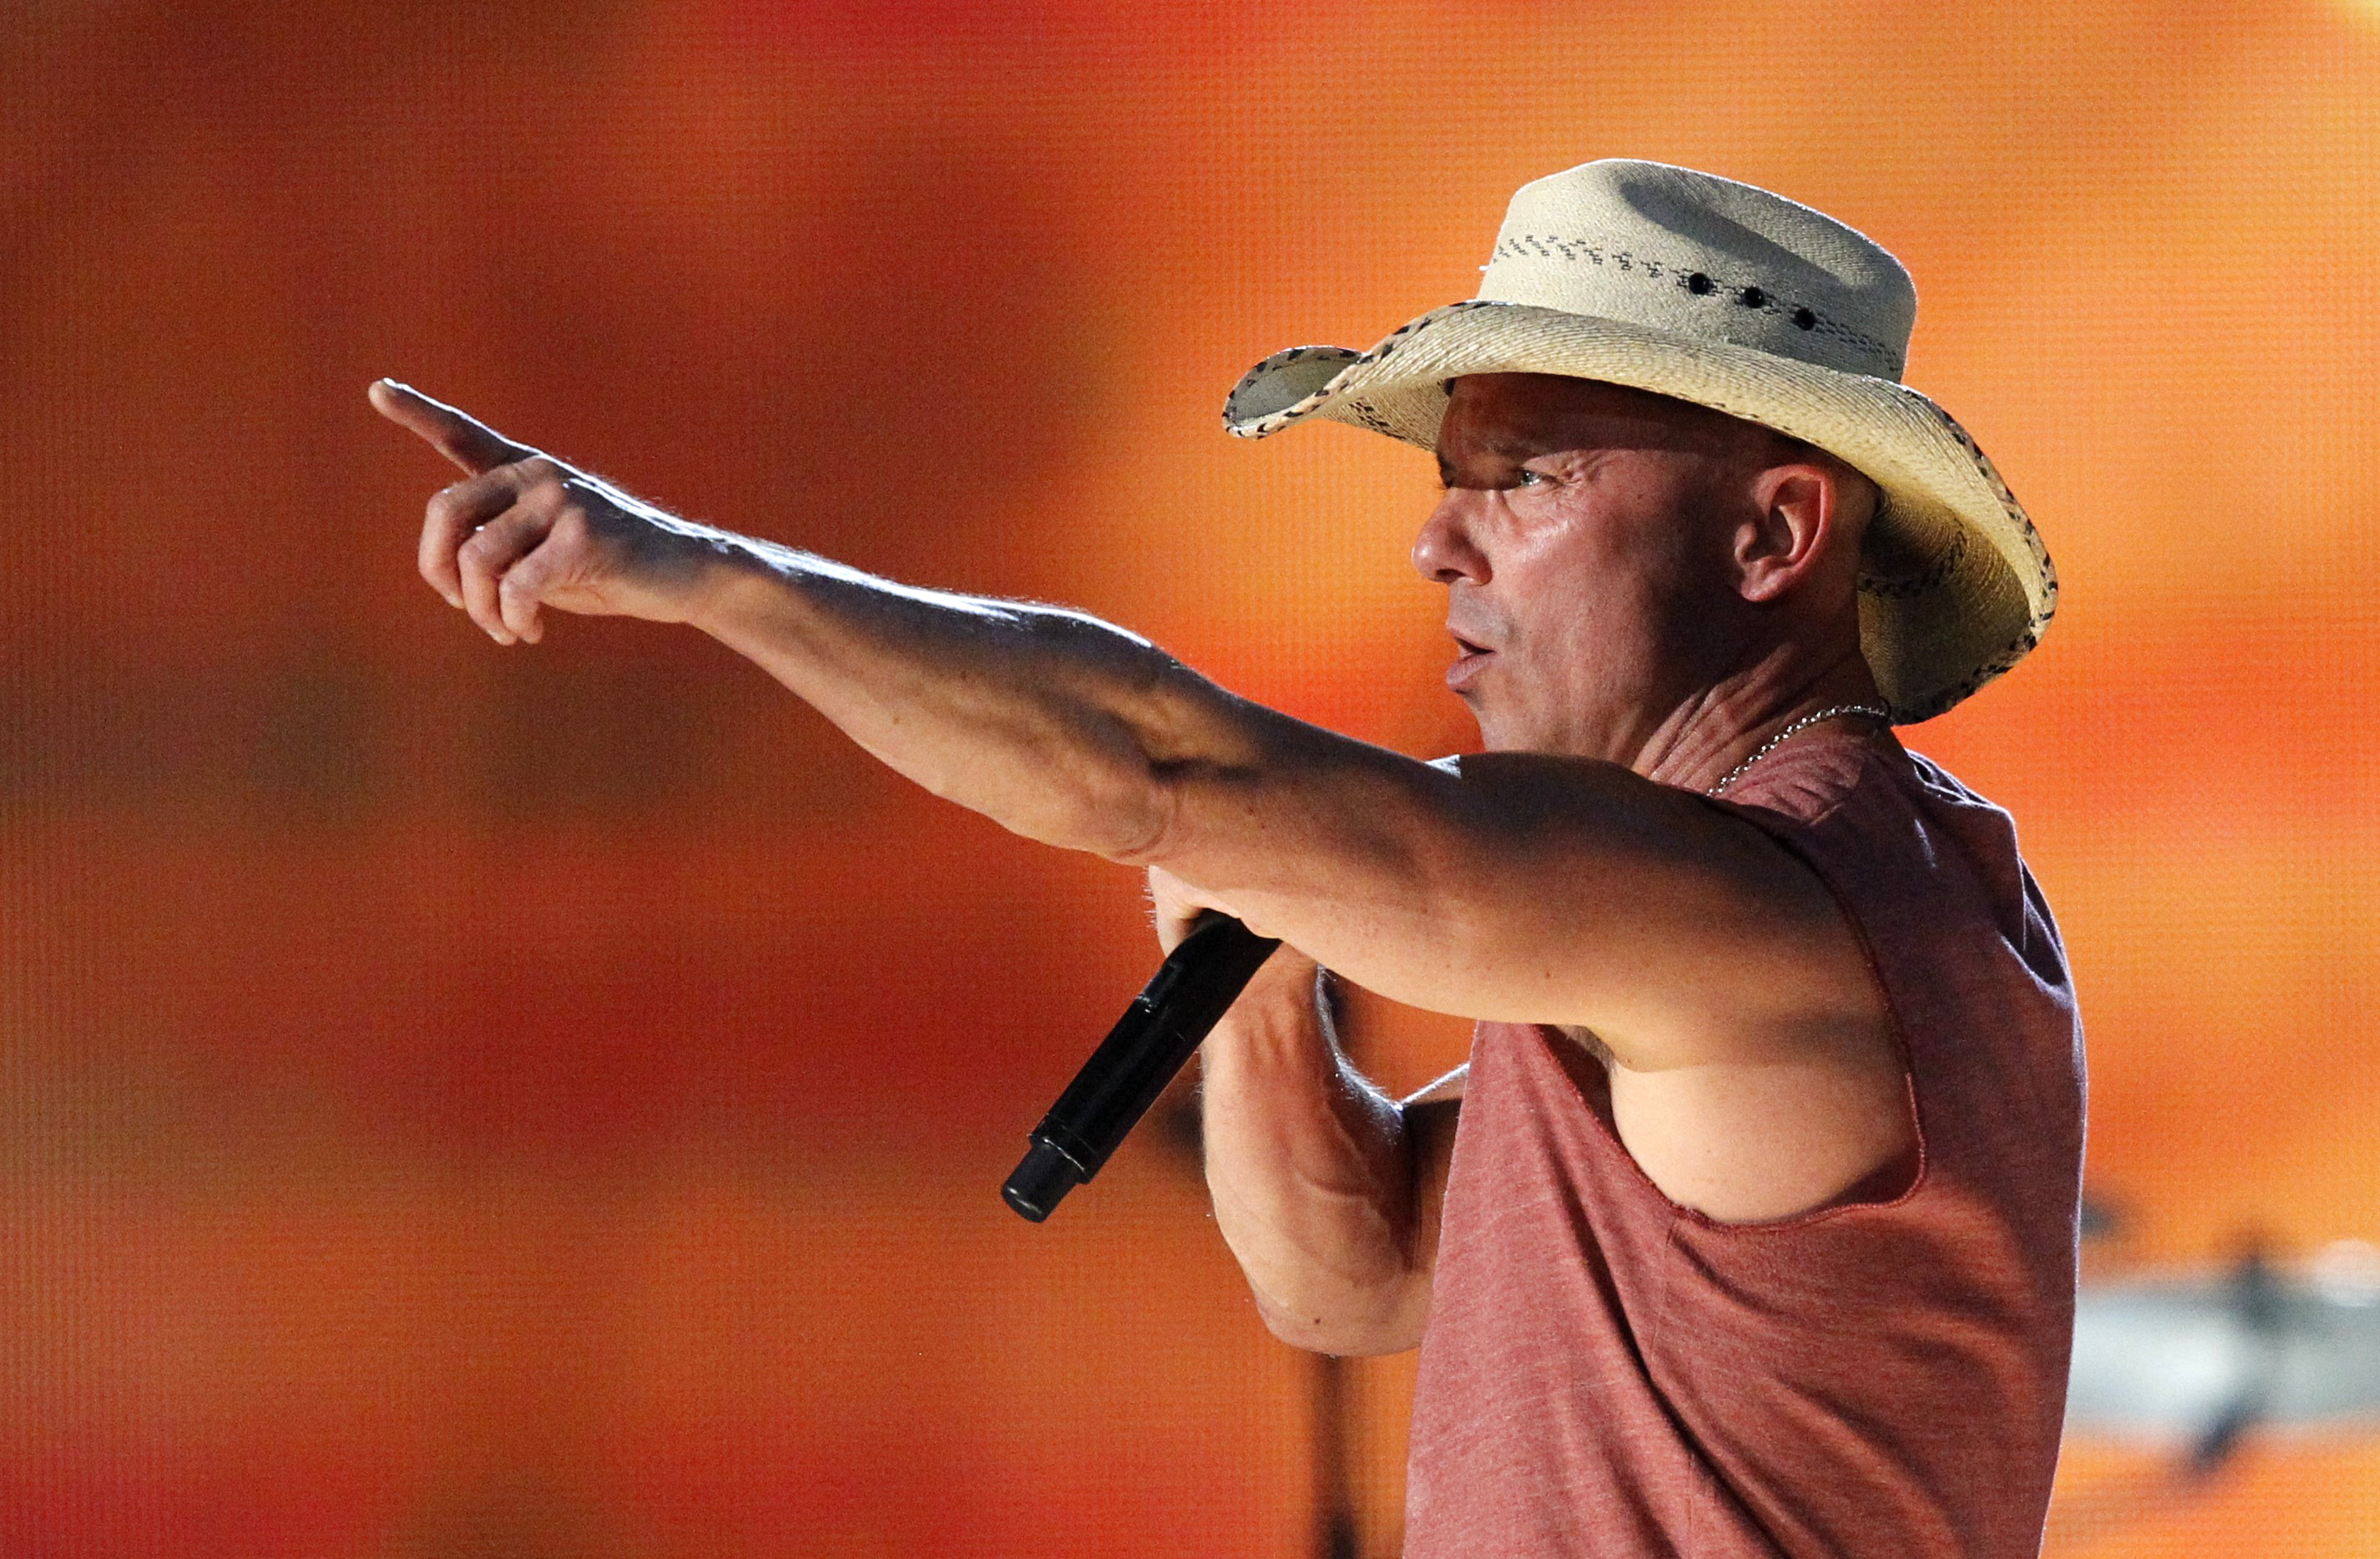 4. Kenny Chesney